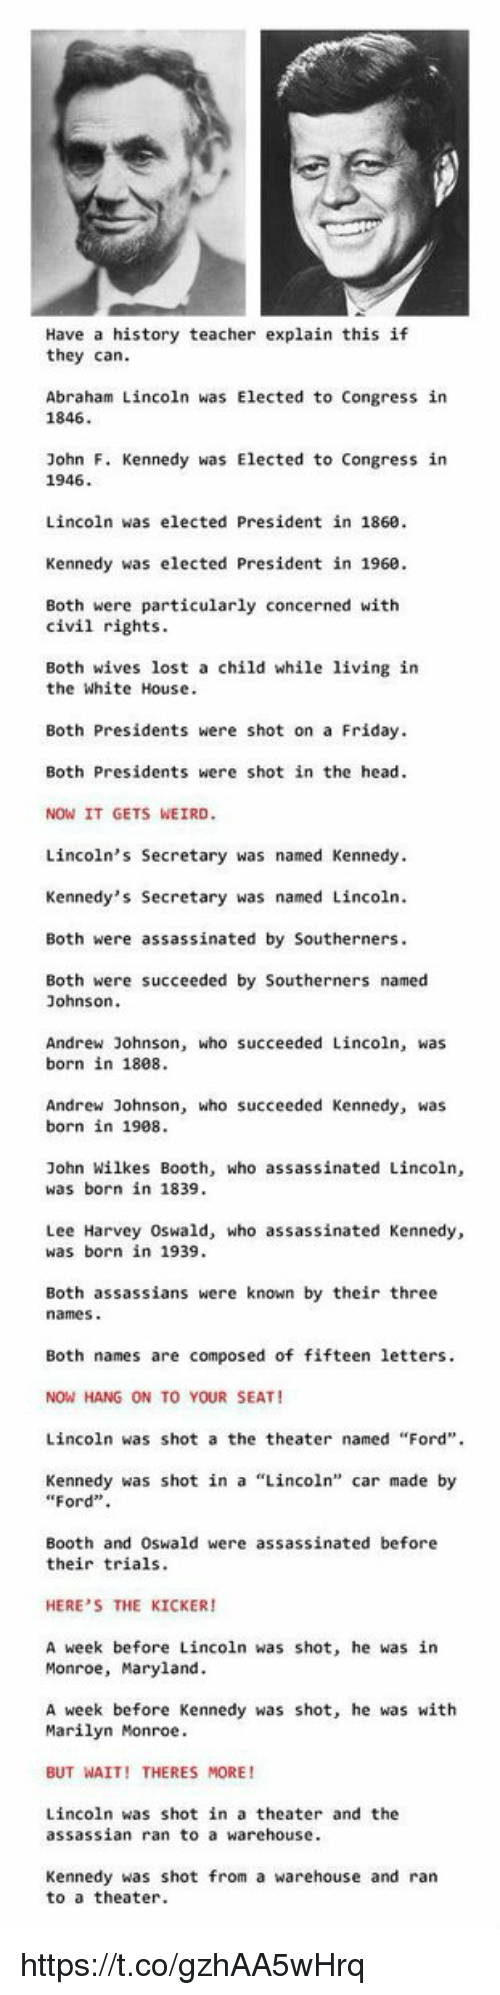 """Lee Harvey Oswald: Have a history teacher explain this if  they can.  Abraham Lincoln was Elected to Congress in  1846  John F. Kennedy was Elected to Congress in  1946.  Lincoln was elected President in 1860.  Kennedy was elected President in 1960.  Both were particularly concerned with  civil rights.  Both wives lost a child while living in  the White House.  Both Presidents were shot on a Friday.  Both Presidents were shot in the head.  NOW IT GETS WEIRD.  Lincoln's Secretary was named Kennedy.  Kennedy's Secretary was named Lincoln.  Both were assassinated by Southerners.  Both were succeeded by Southerners named  Johnson  Andrew Johnson, who succeeded Lincoln, was  born in 1808.  Andrew Johnson, who succeeded Kennedy, was  born in 1908.  John Wilkes Booth, who assassinated Lincoln  was born in 1839.  Lee Harvey Oswald, who assassinated Kennedy,  was born in 1939.  Both assassians were known by their three  names  Both names are composed of fifteen letters.  NOW HANG ON TO YOUR SEAT!  Lincoln was shot a the theater named """"Ford"""".  Kennedy was shot in a """"Lincoln"""" car made by  """"Ford"""".  Booth and Oswald were assassinated before  their trials.  HERE'S THE KICKER  A week before Lincoln was shot, he was in  Monroe, Maryland.  A week before Kennedy was shot, he was with  Marilyn Monroe.  BUT WAIT! THERES MORE!  Lincoln was shot in a theater and the  assassian ran to a warehouse.  Kennedy was shot from a warehouse and ran  to a theater. https://t.co/gzhAA5wHrq"""